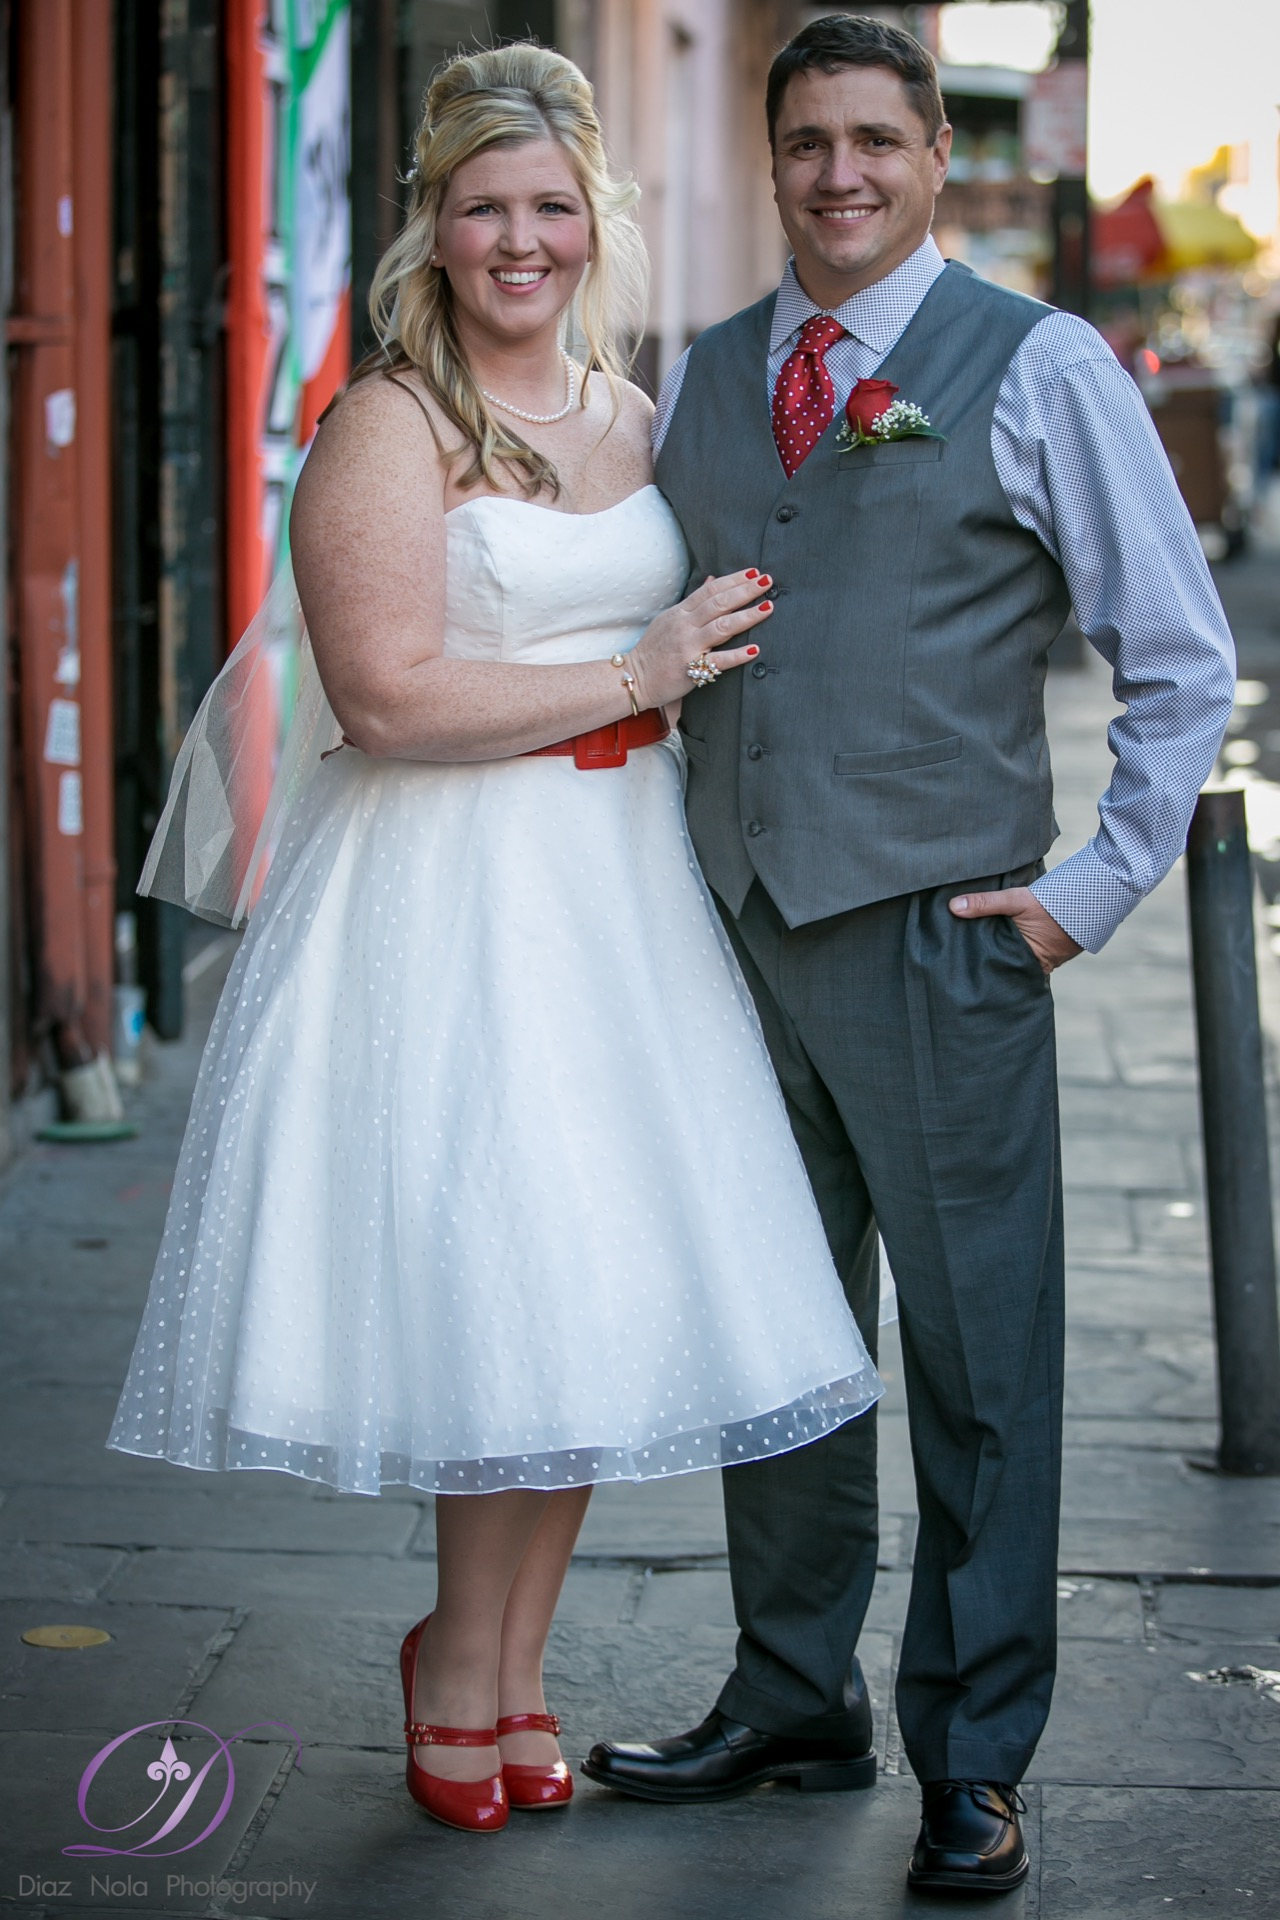 Jenny New Orleans Elopement Photography-4514